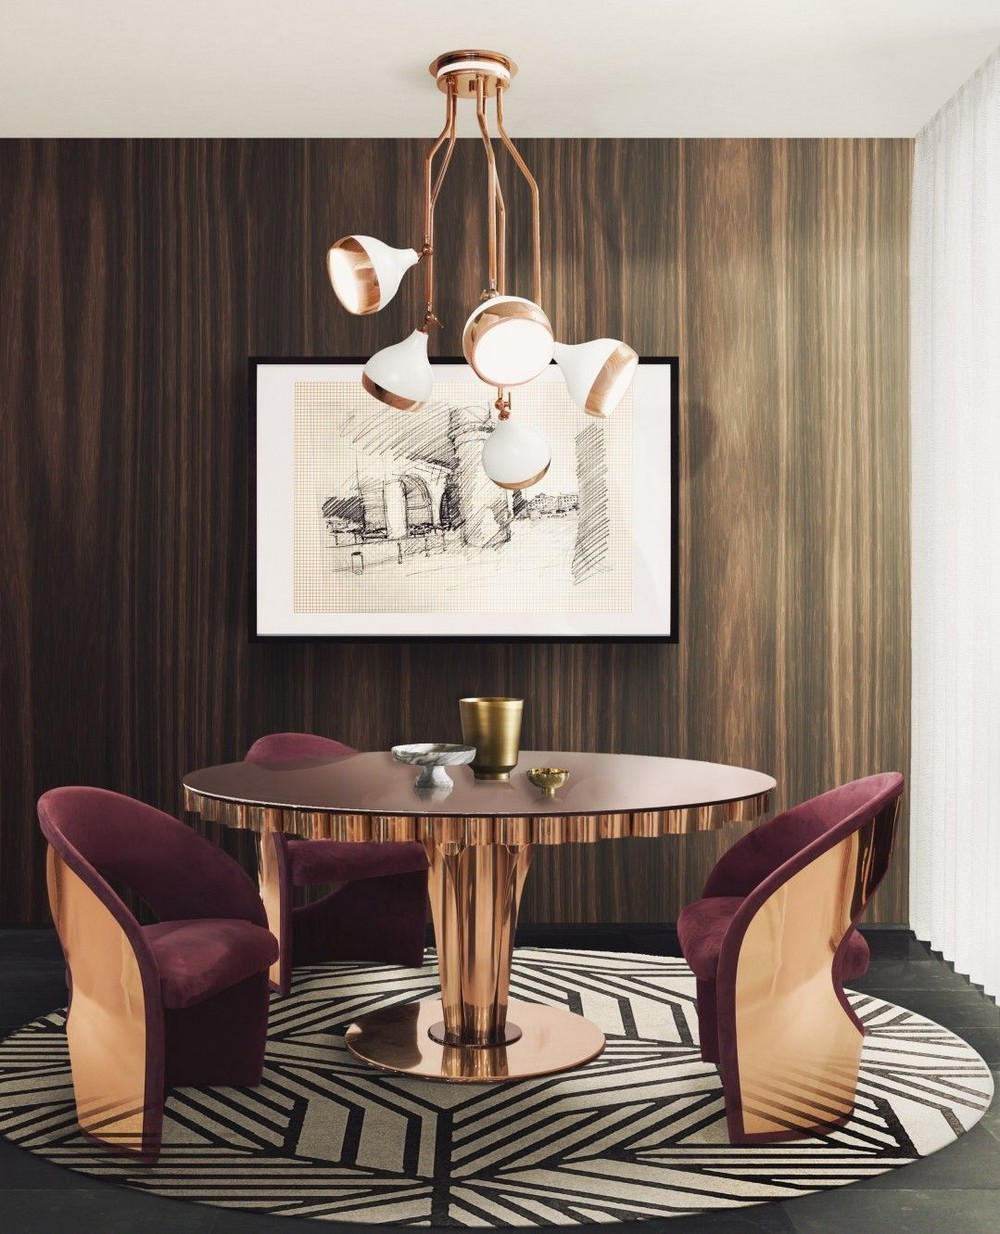 The Perfect Element For Stylish Settings: 25 Dining Tables You'll Love dining tables The Perfect Element For Stylish Settings: 25 Dining Tables You'll Love wormkley